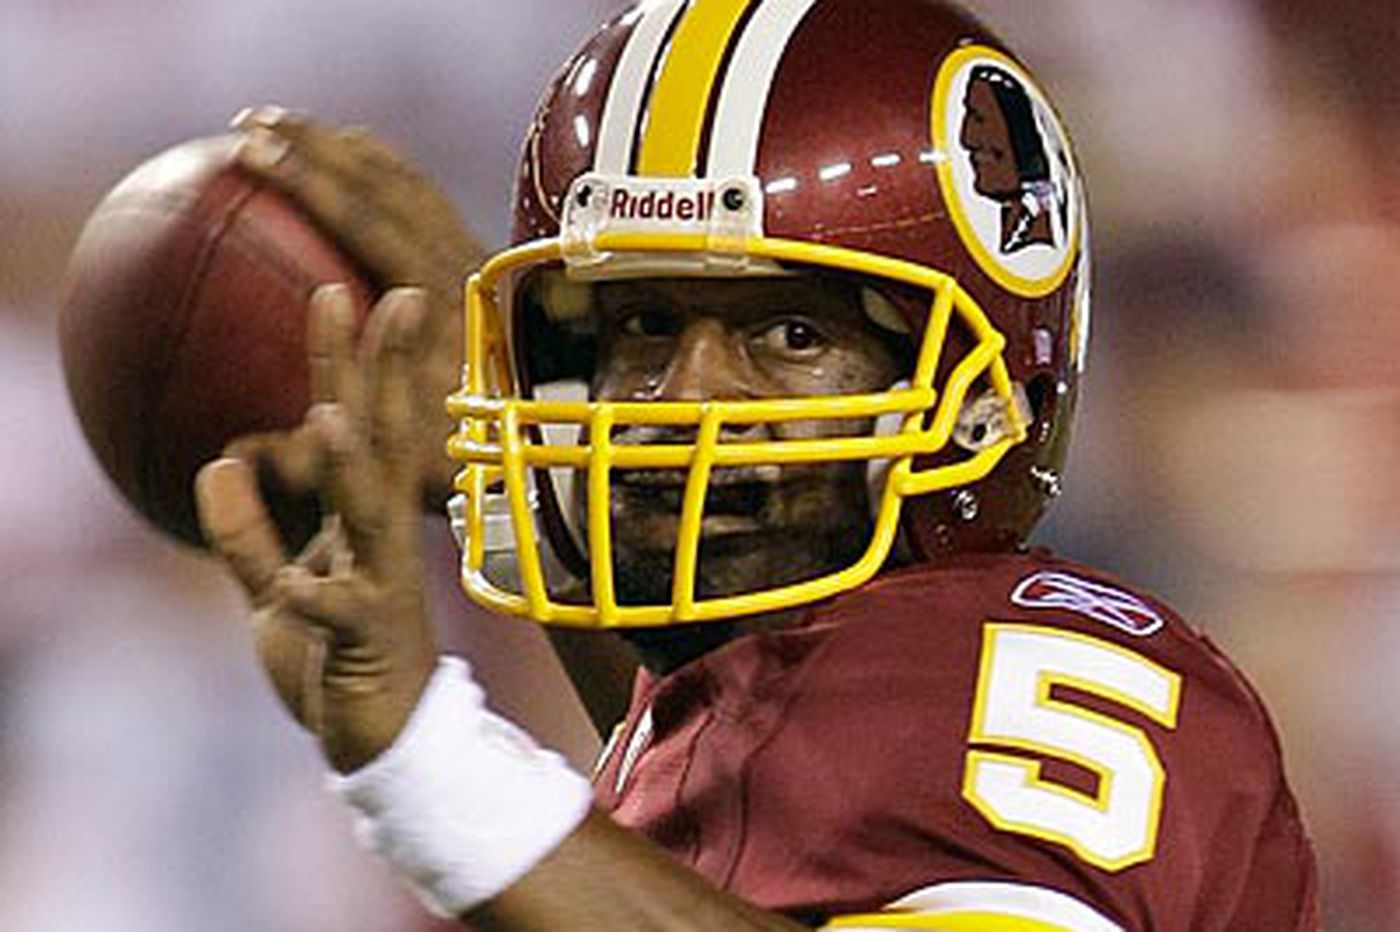 Les Bowen: Redskins have rolled out a new McNabb